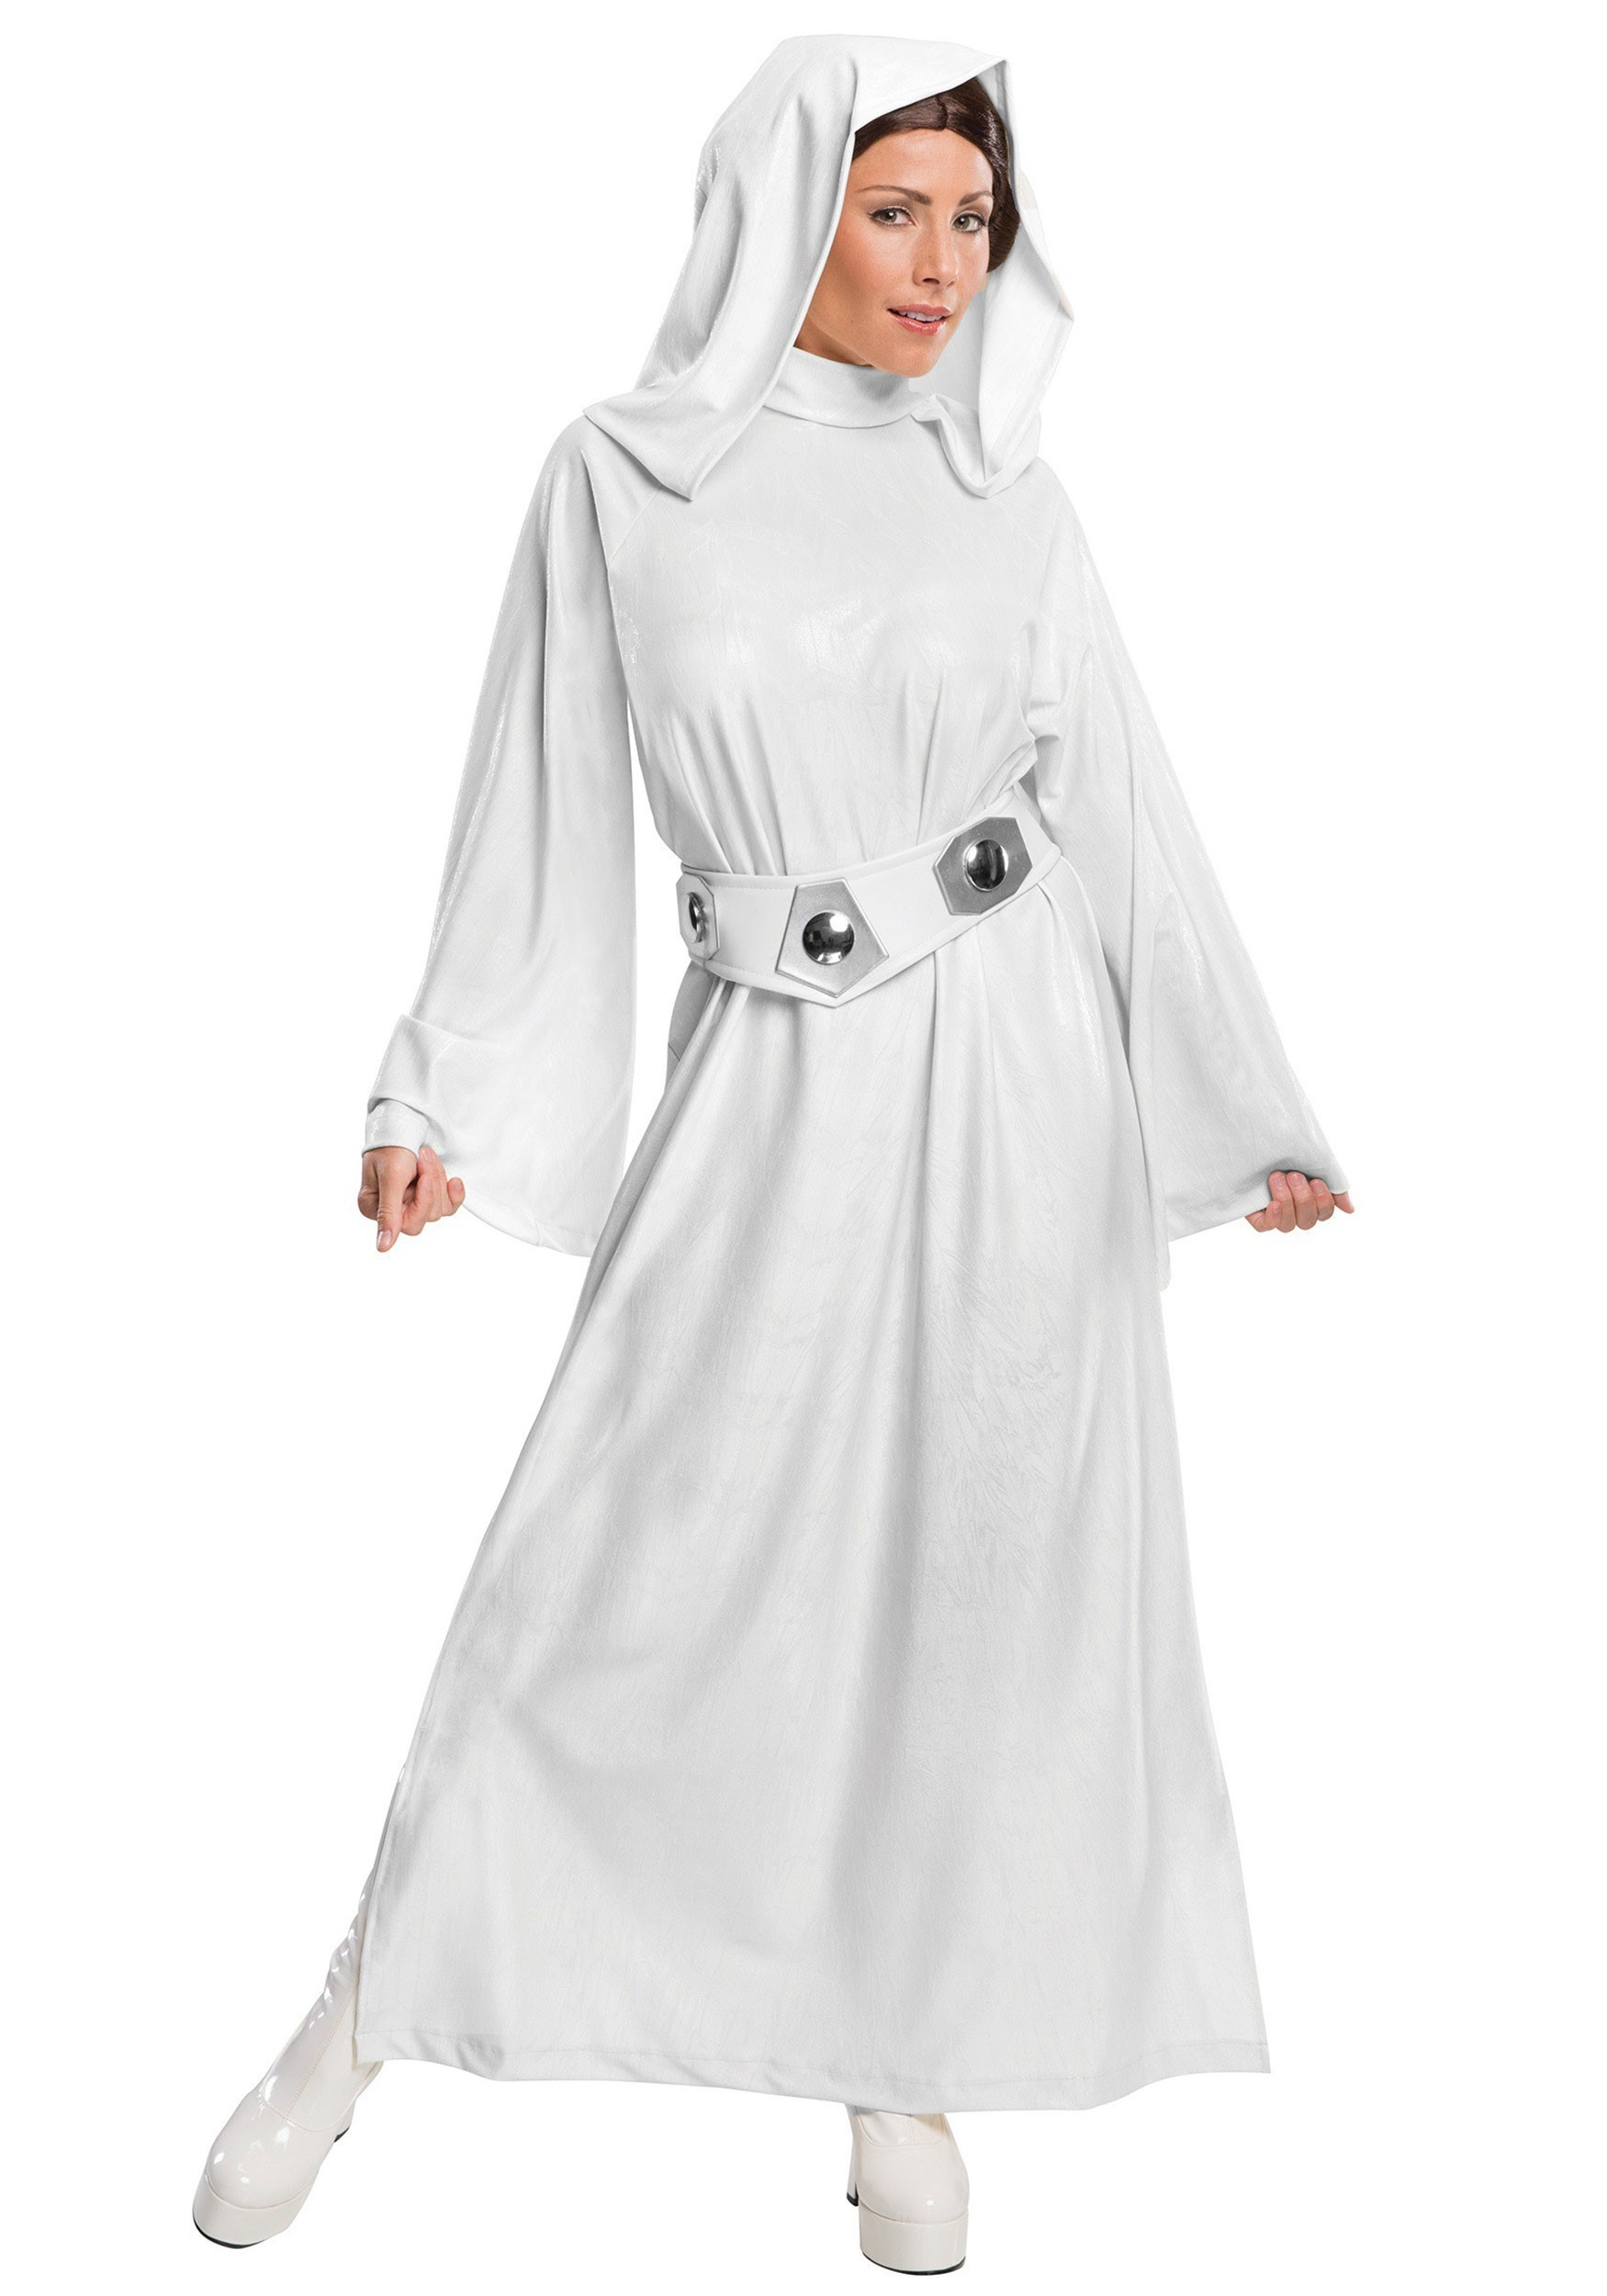 Deluxe Princess Leia Womens Costume  sc 1 st  Fun.com & Deluxe Princess Leia Costume for Women